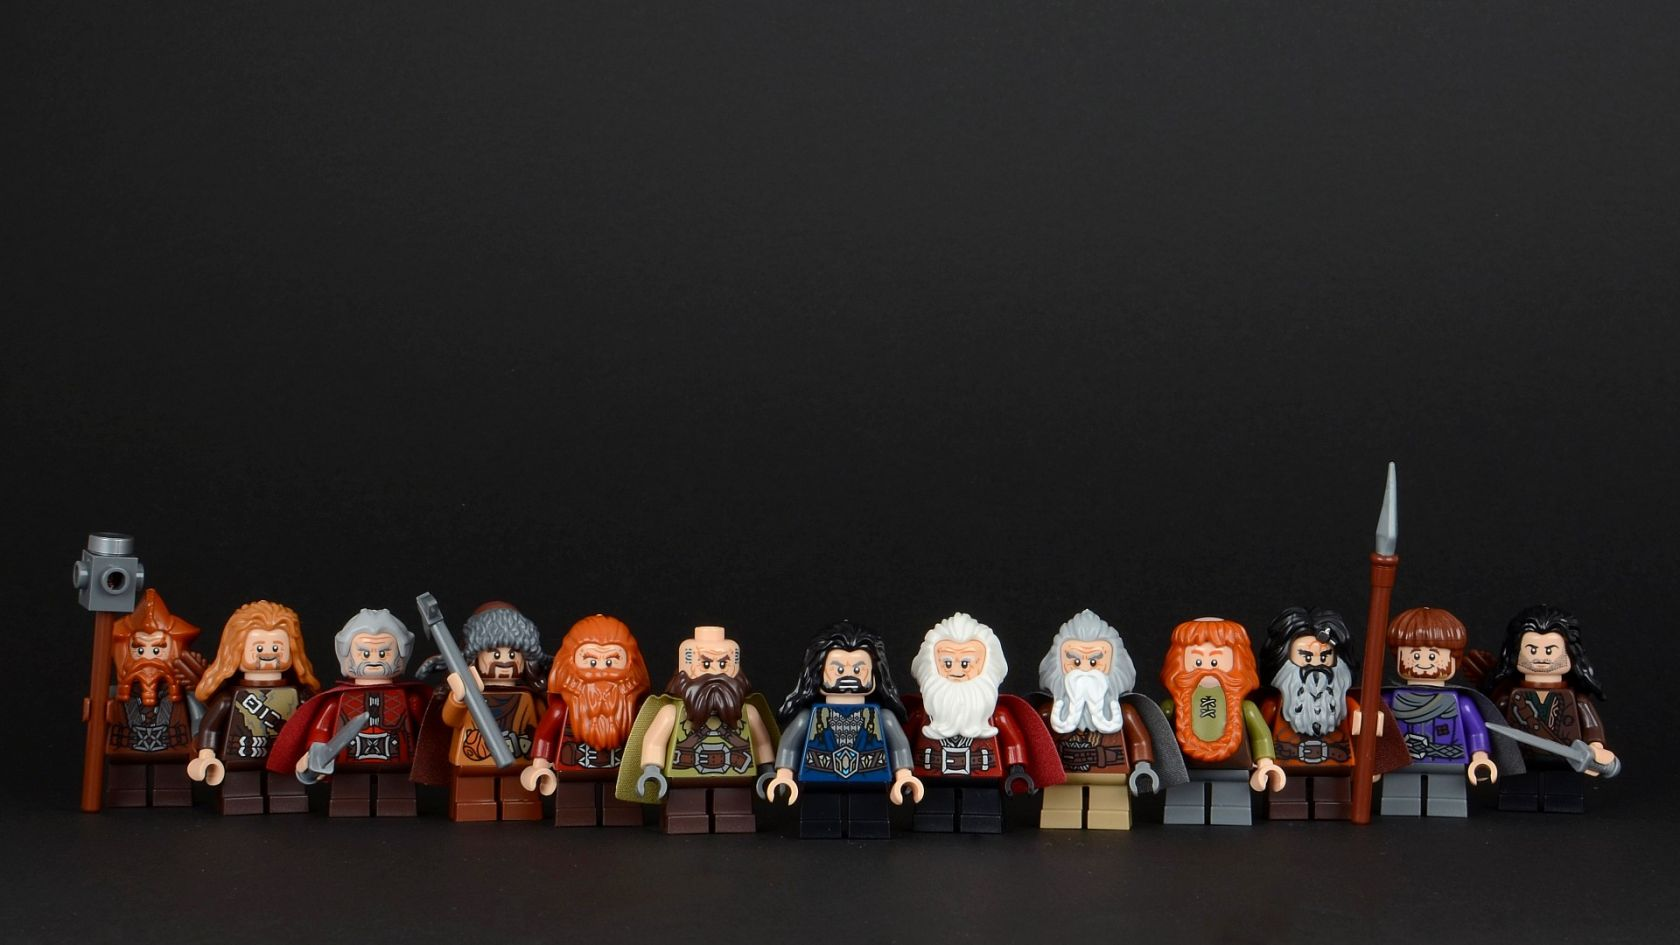 LEGO dwarves from The Hobbit [1920x1080] Wallpapers Wallpapers 1680x945